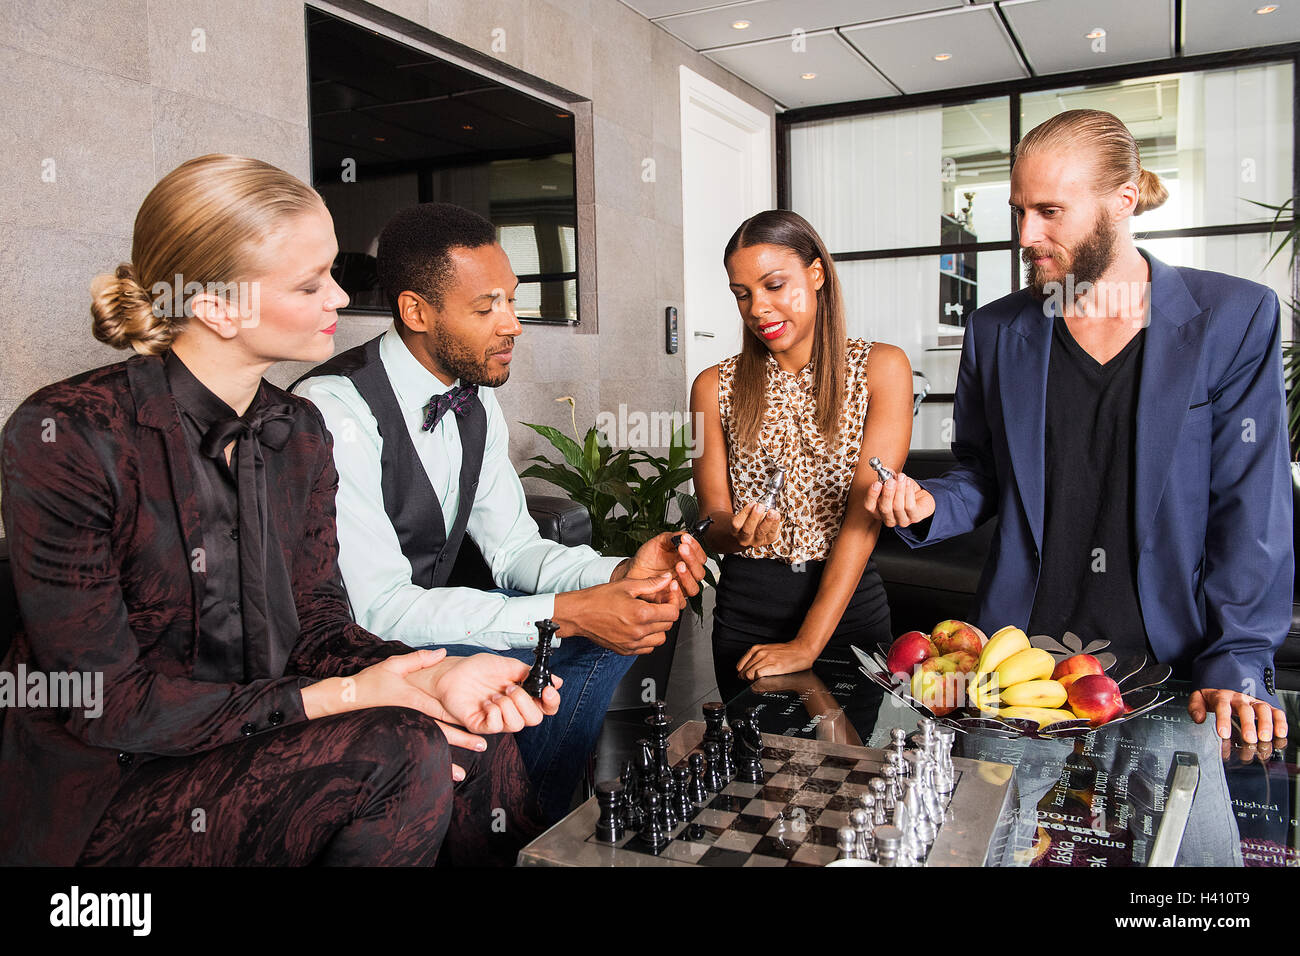 Strategic business meeting with chess play - Stock Image